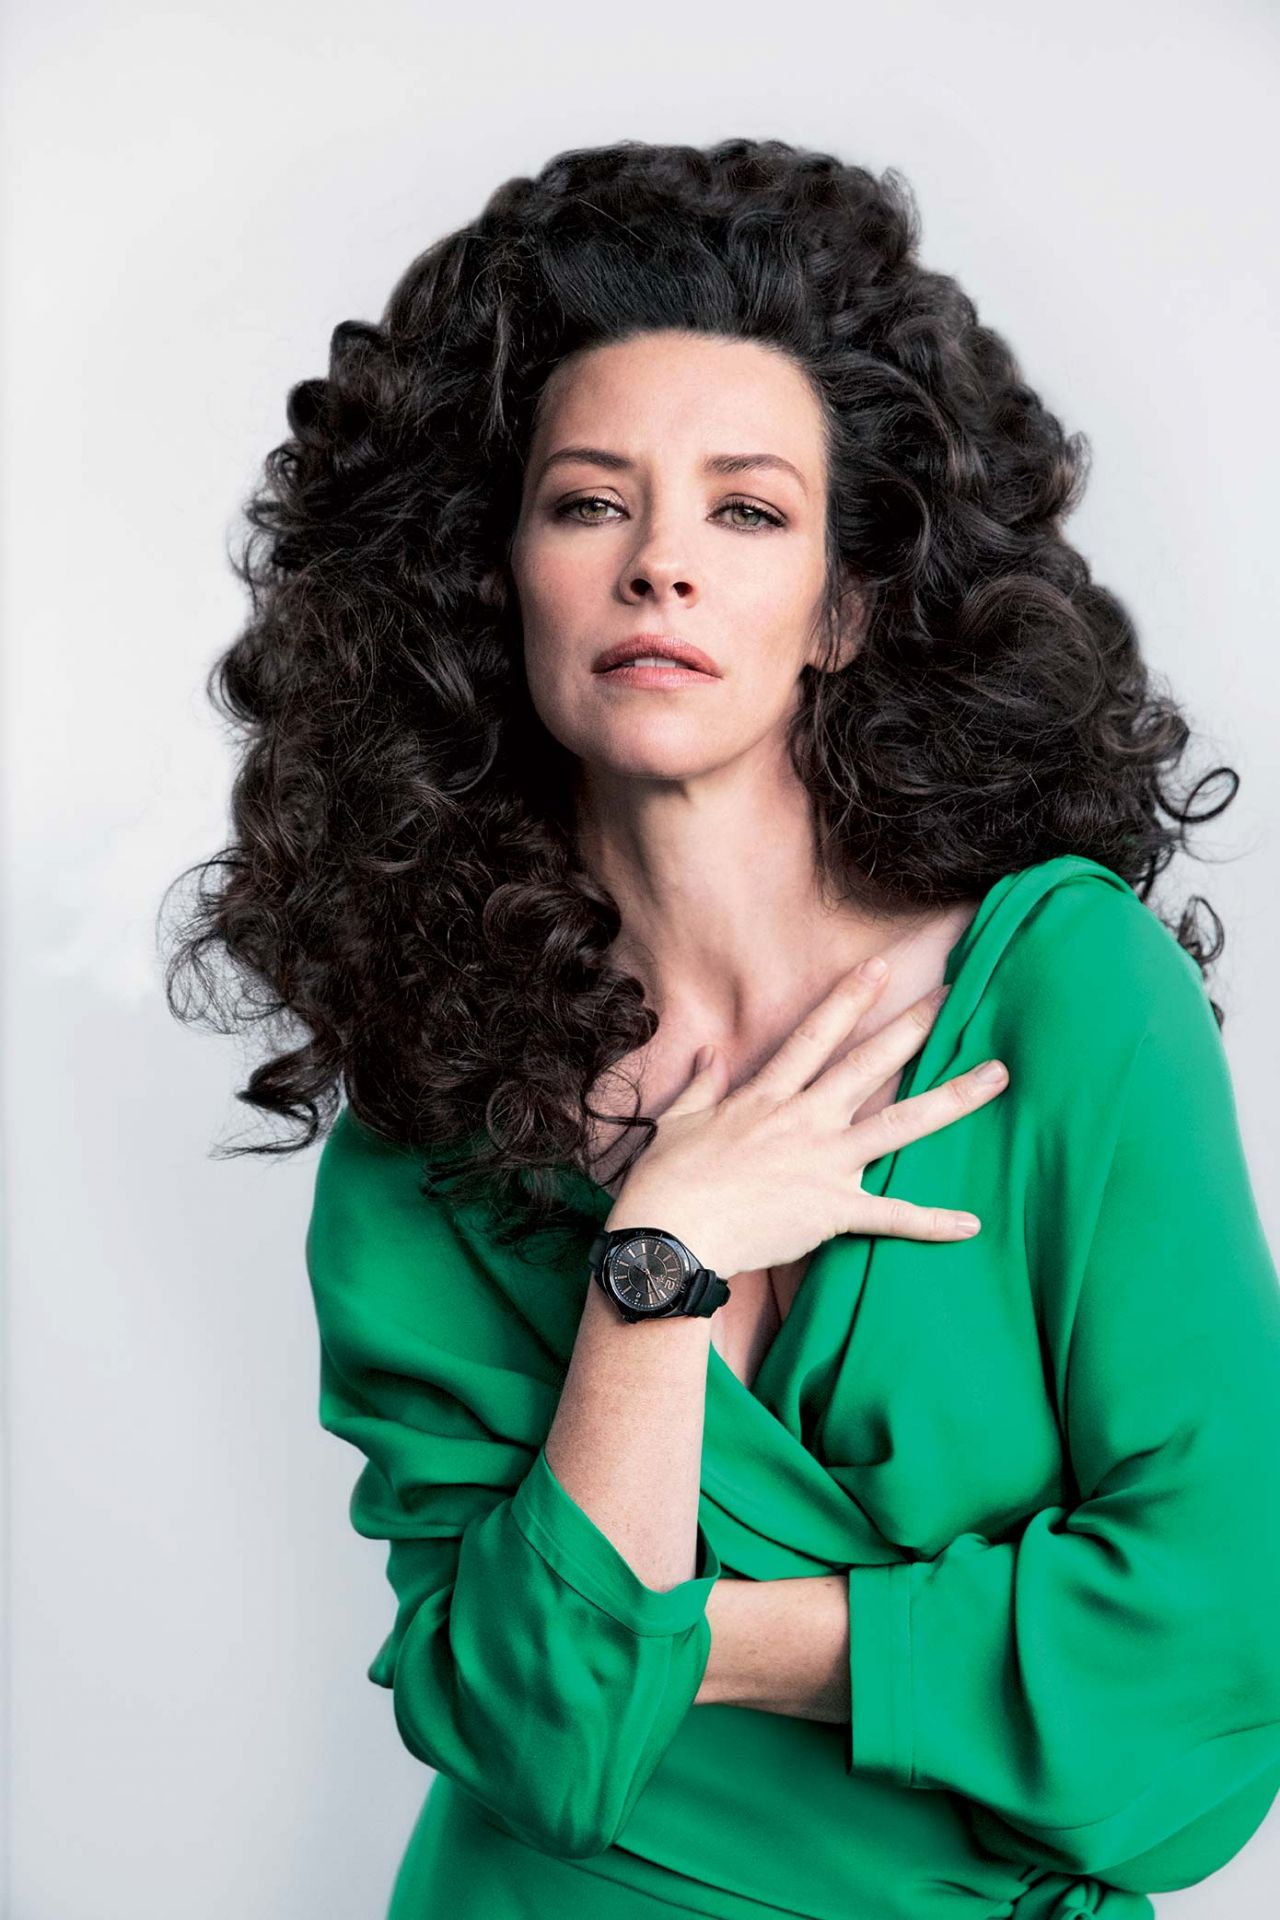 https://celebmafia.com/wp-content/uploads/2018/07/evangeline-lilly-marie-claire-malaysia-july-2018-0.jpg